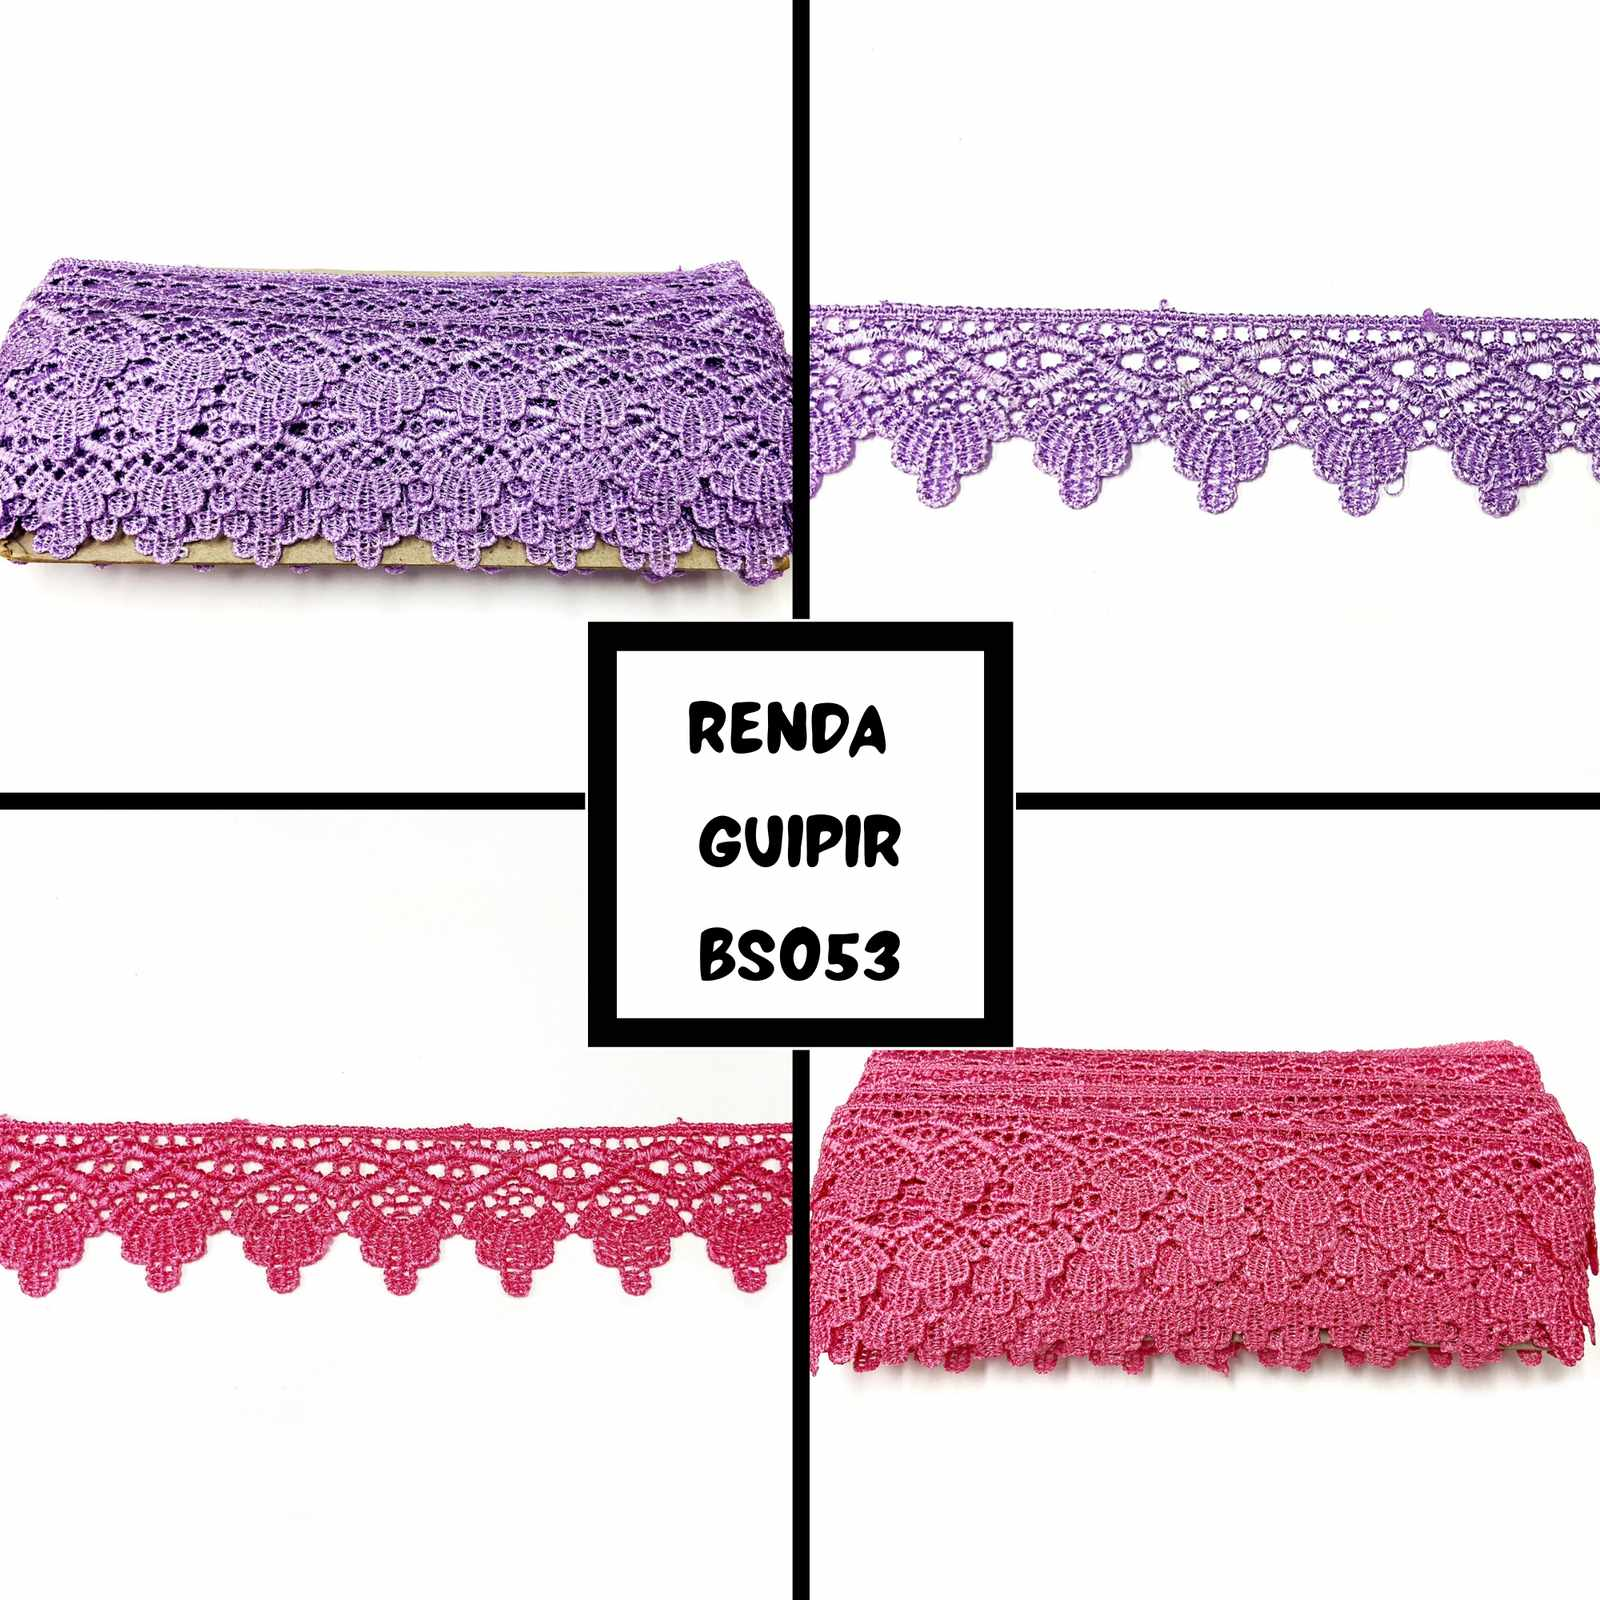 Renda Guipir BS053 - 13,70mts